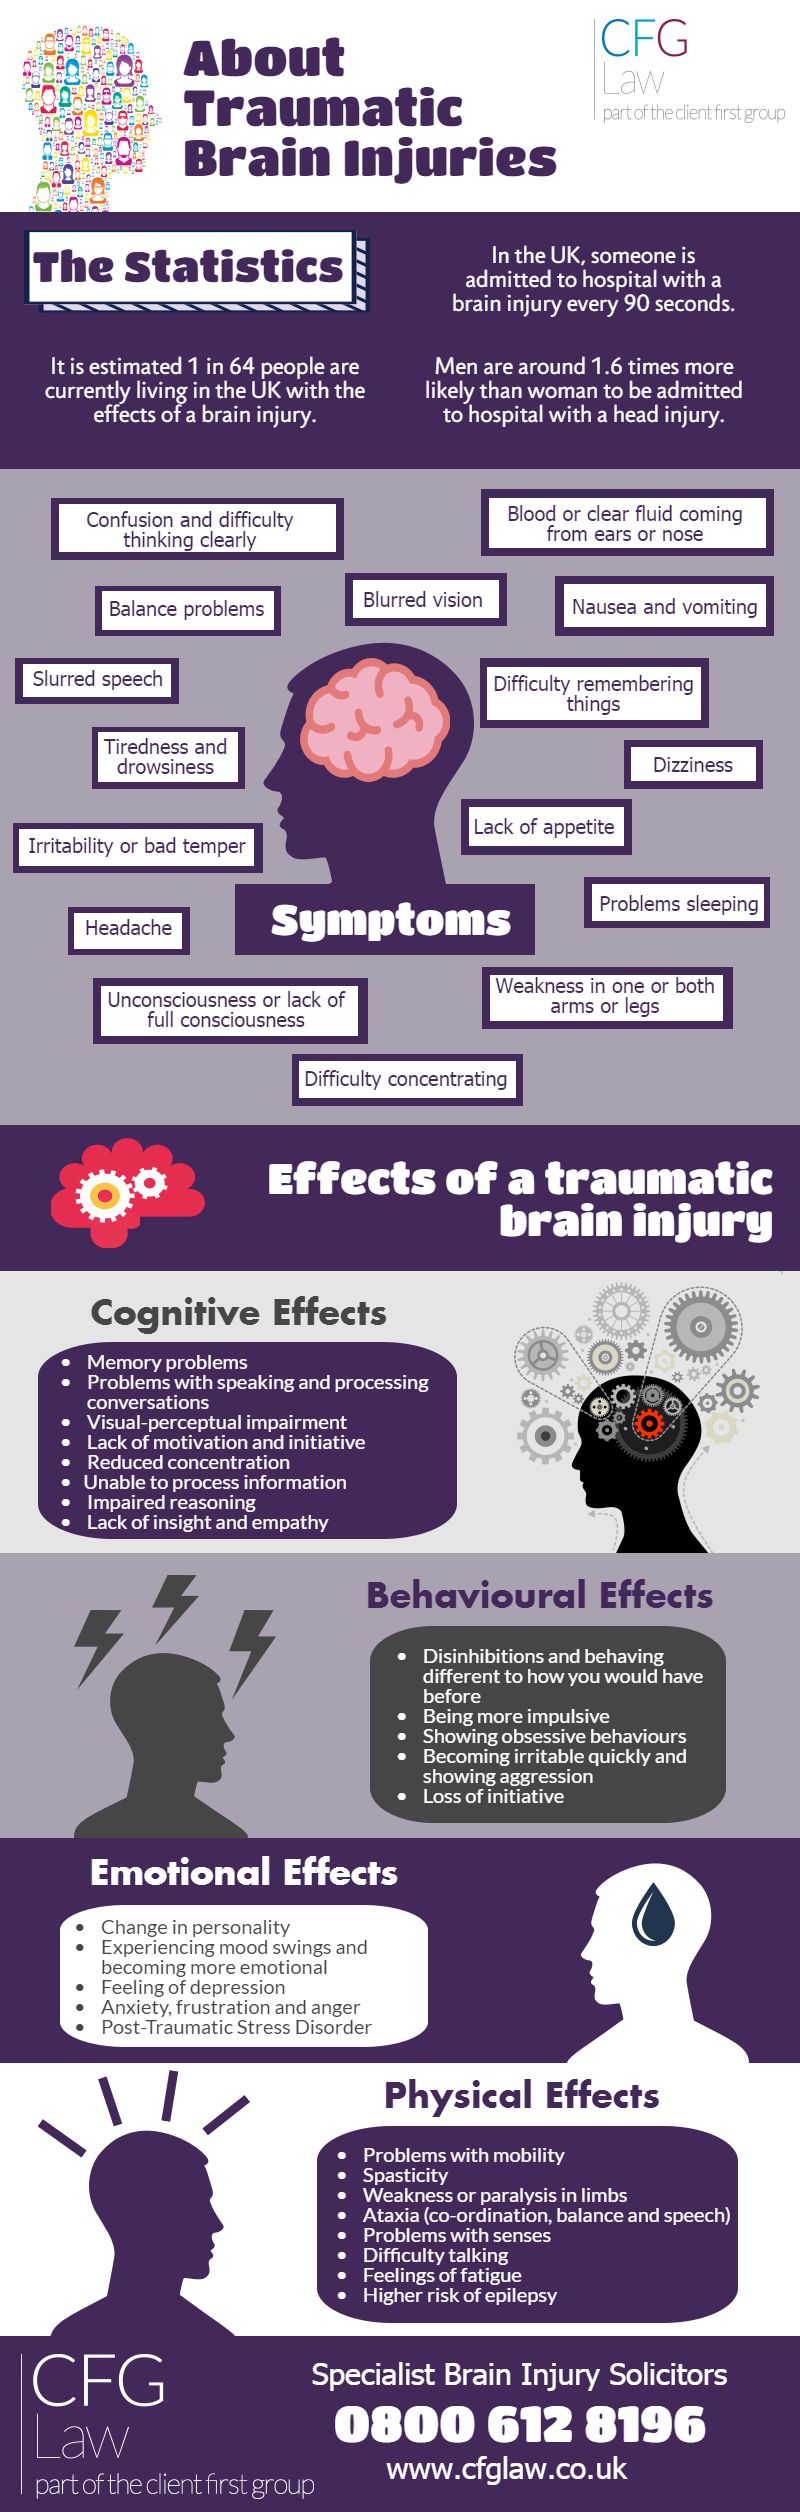 About Traumatic Brain Injuries - Infographic